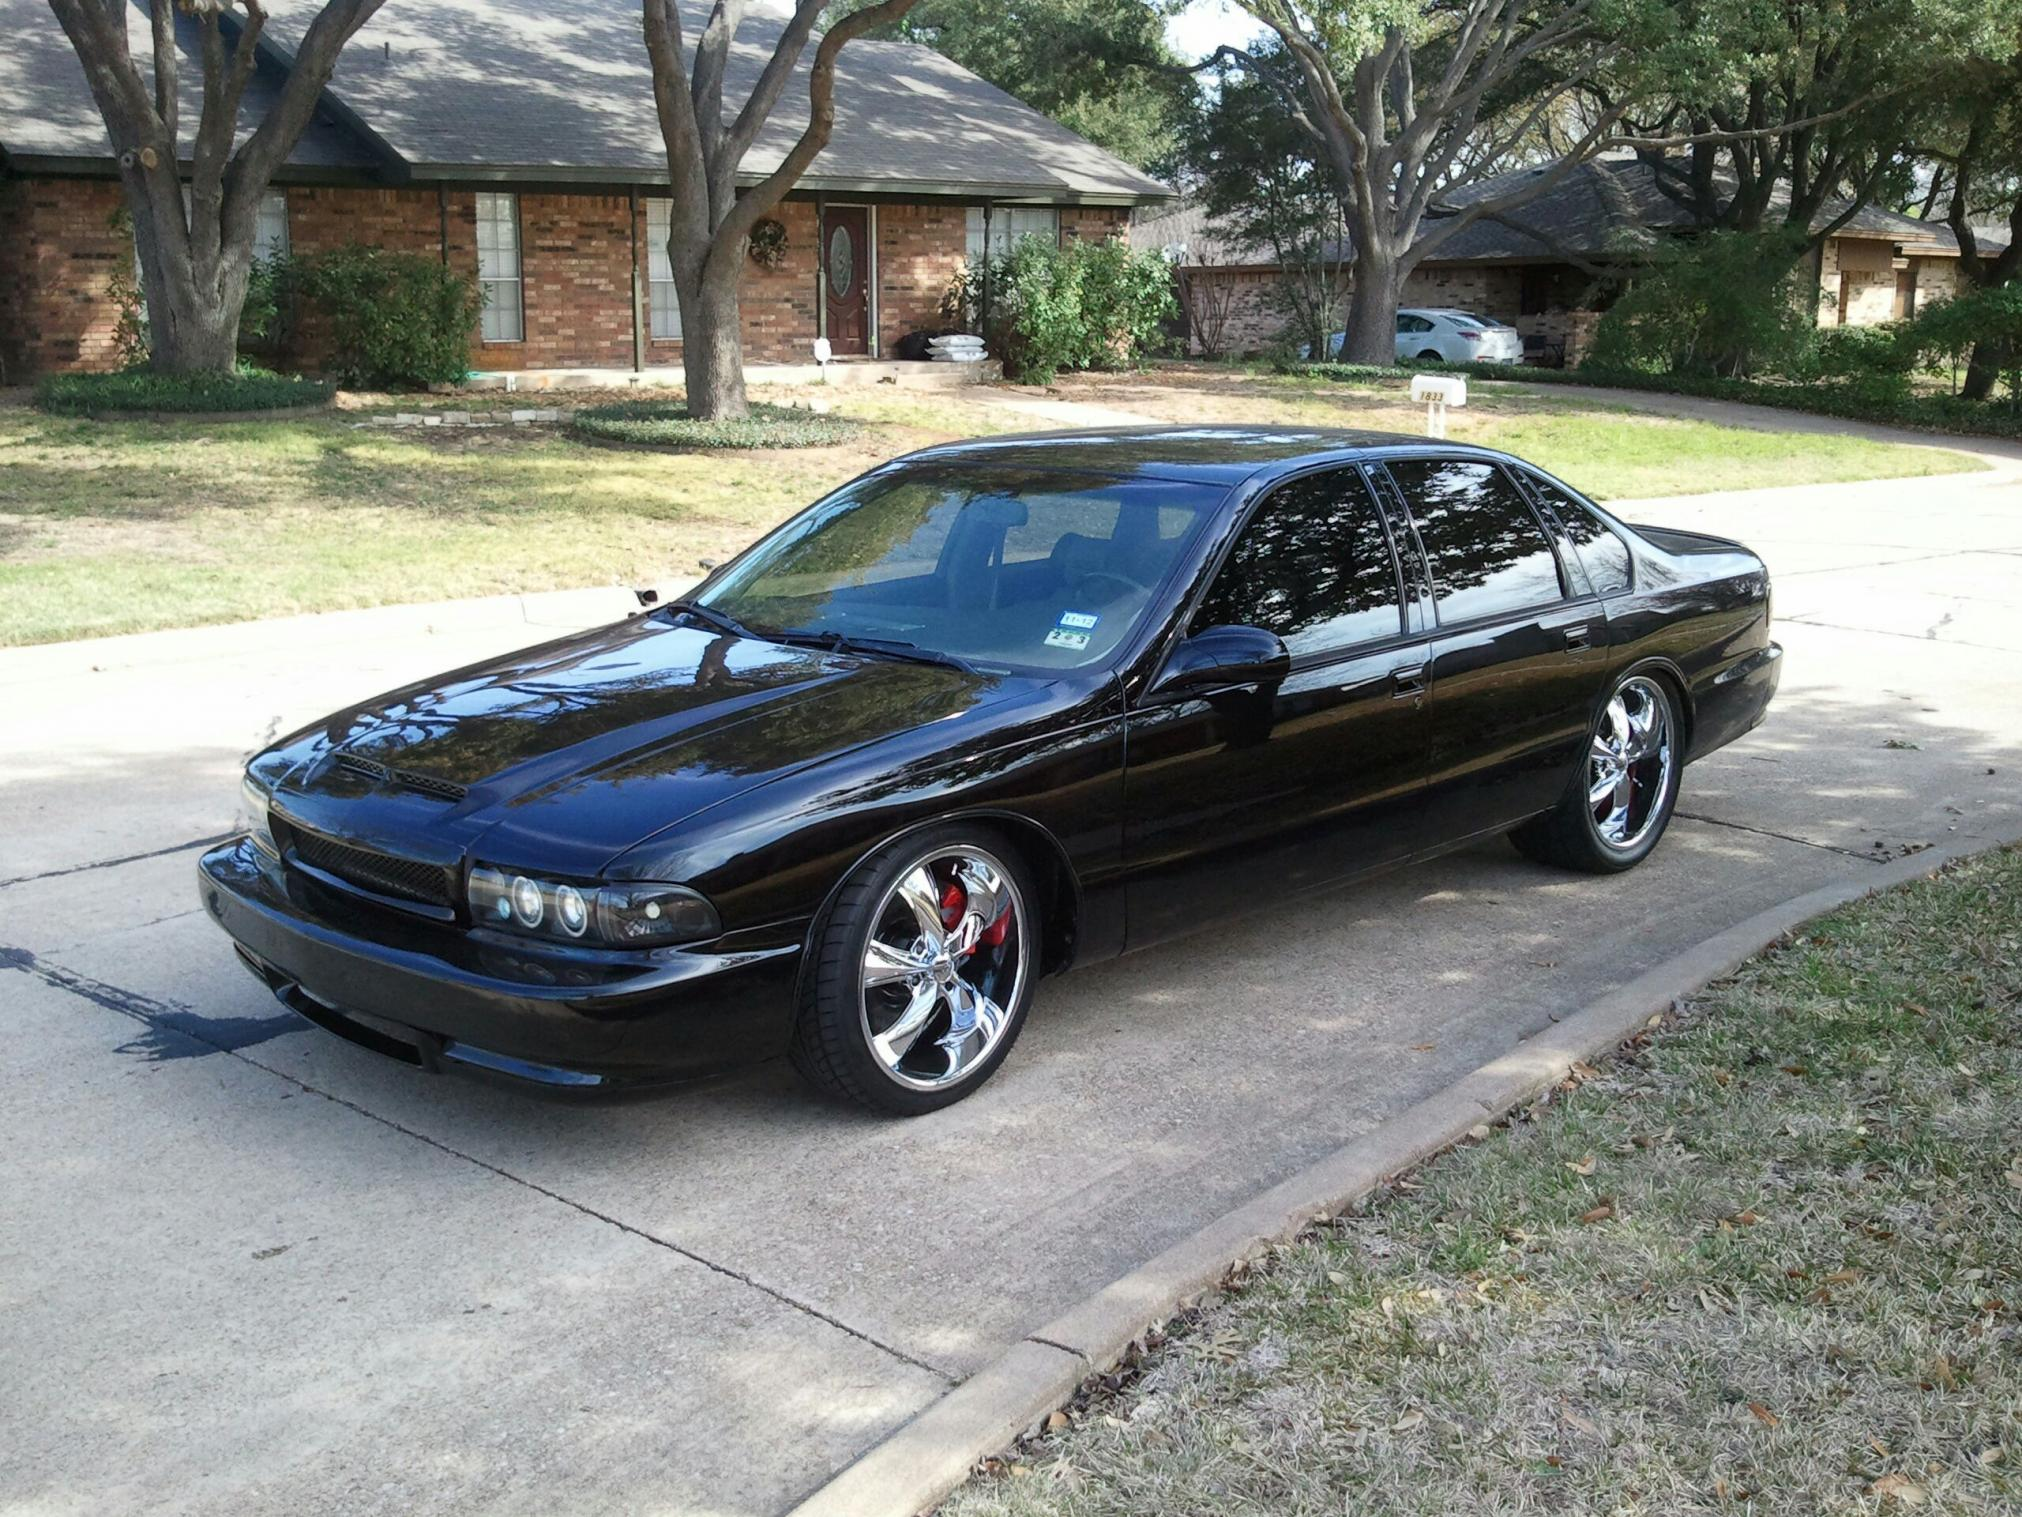 sharp 39 s procharged ls2 1996 impala ss chevy impala forums. Black Bedroom Furniture Sets. Home Design Ideas